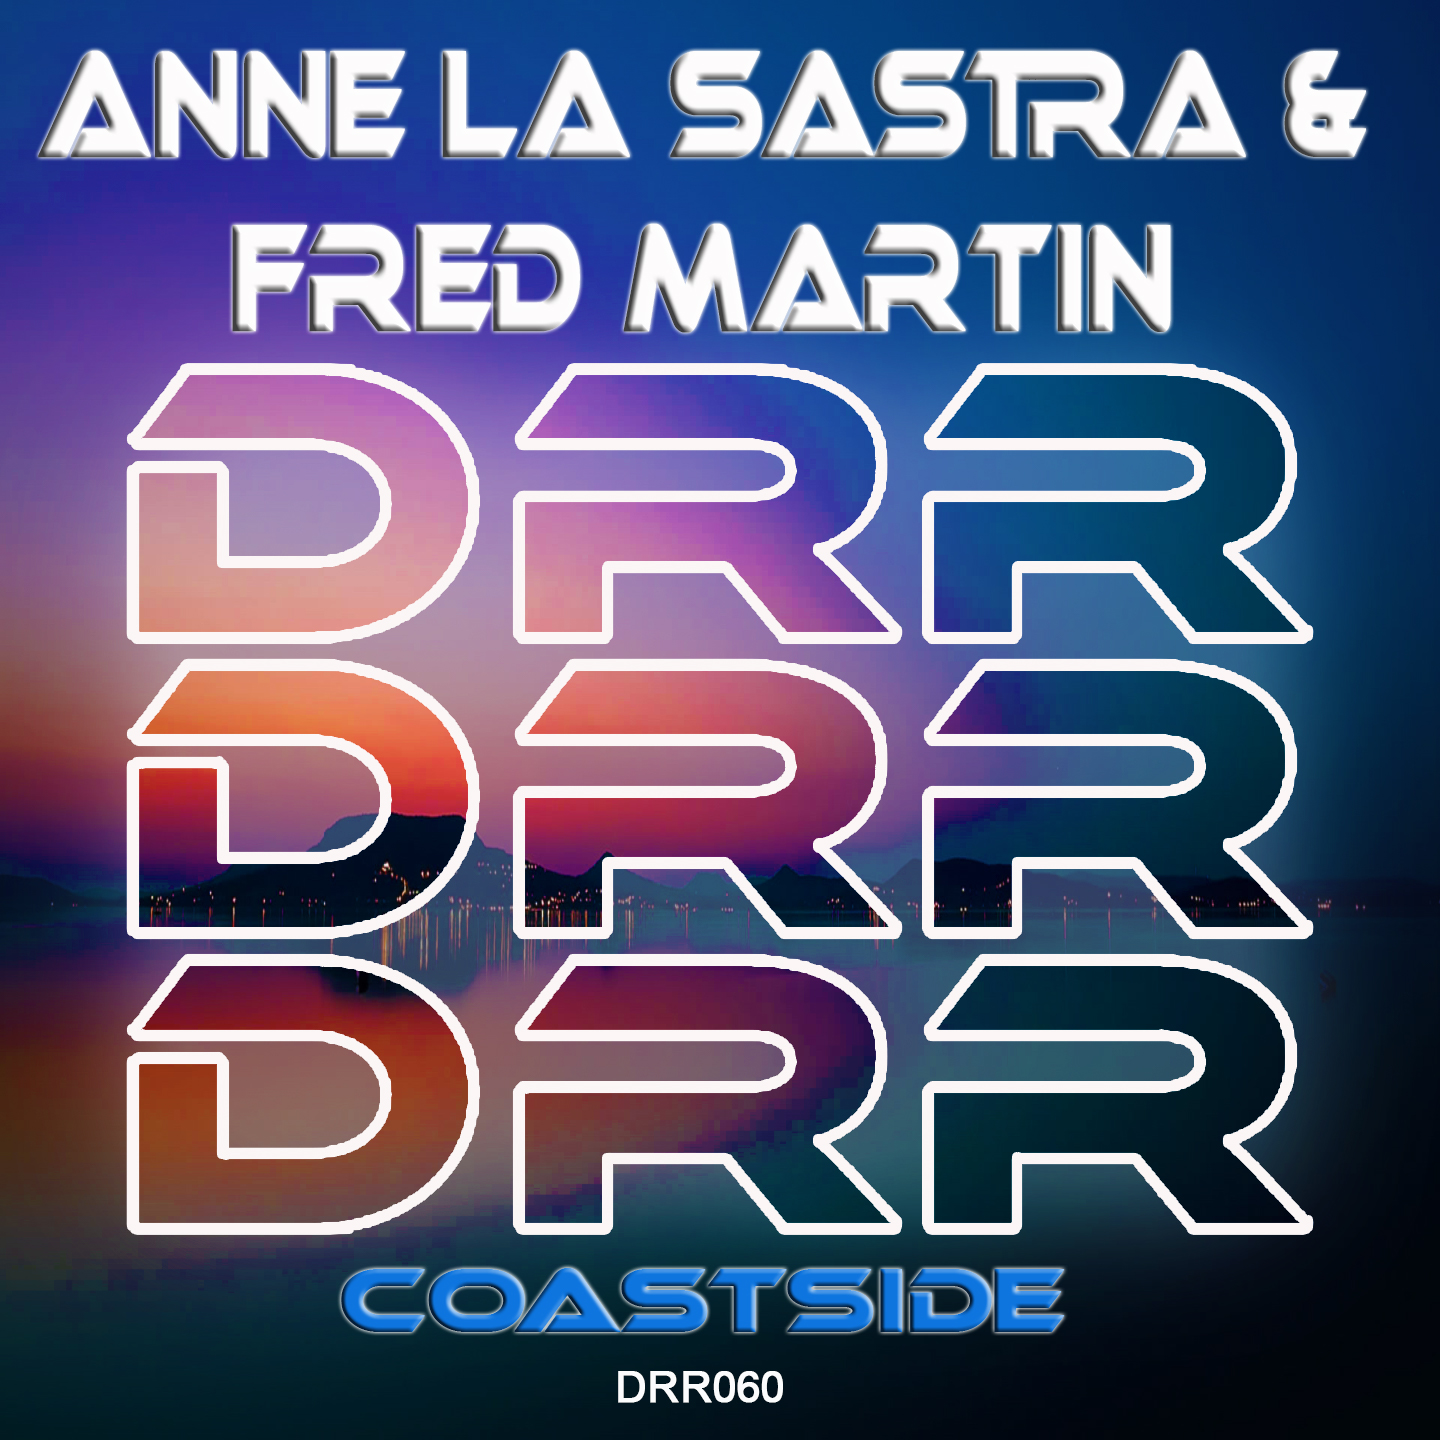 ANNE LA SASTRA & FRED MARTIN-Coastside